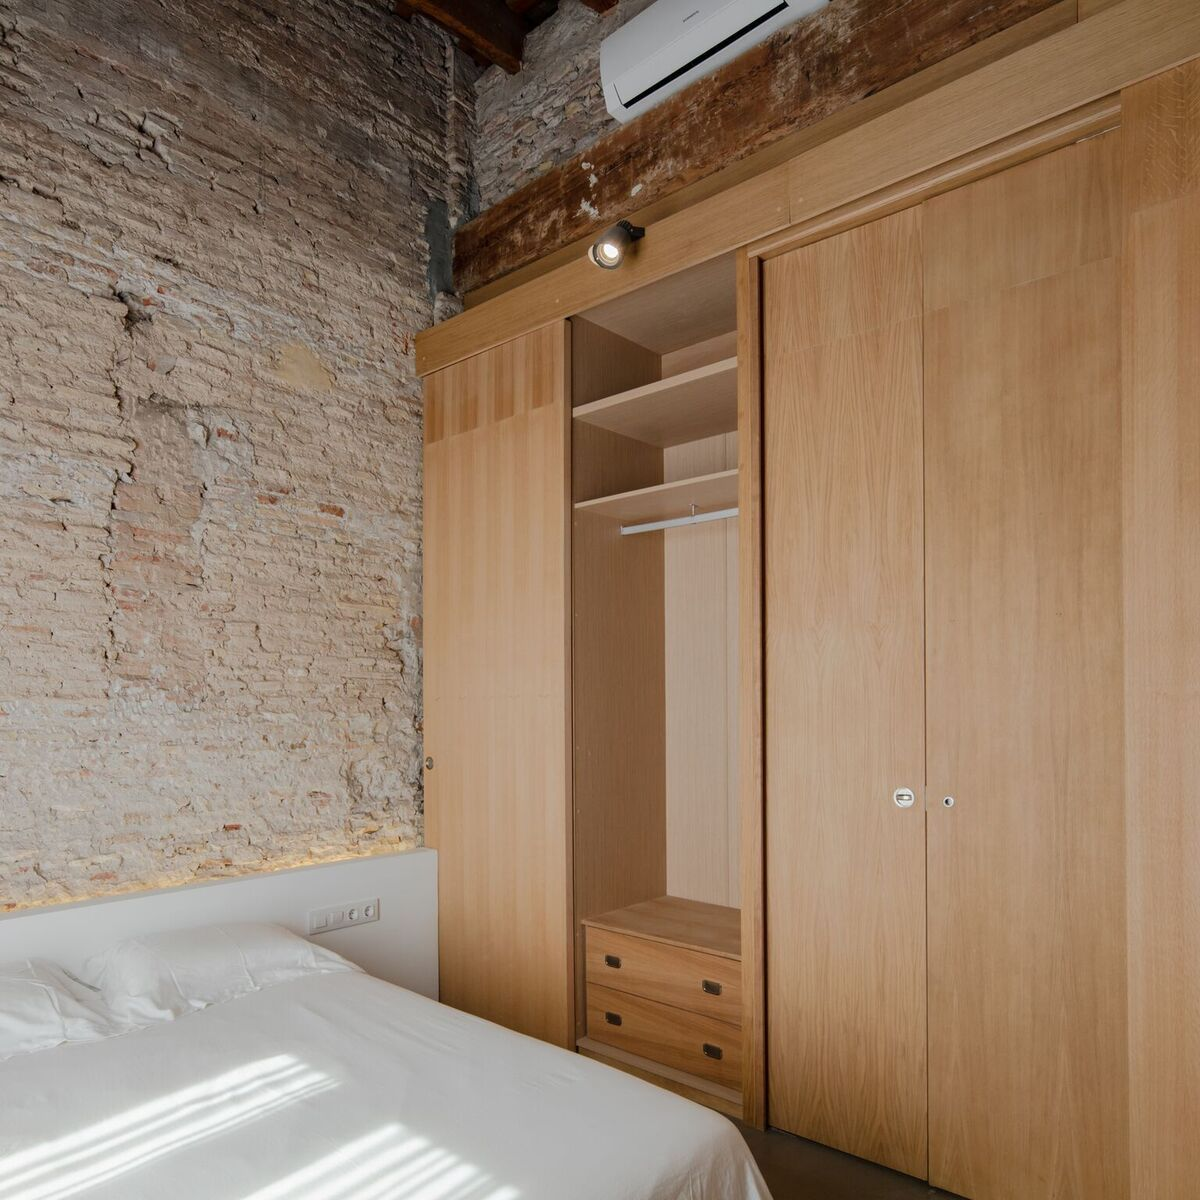 These partitions are made of wood and serve multiple purposes. Here you can see one being used as a wardrobe